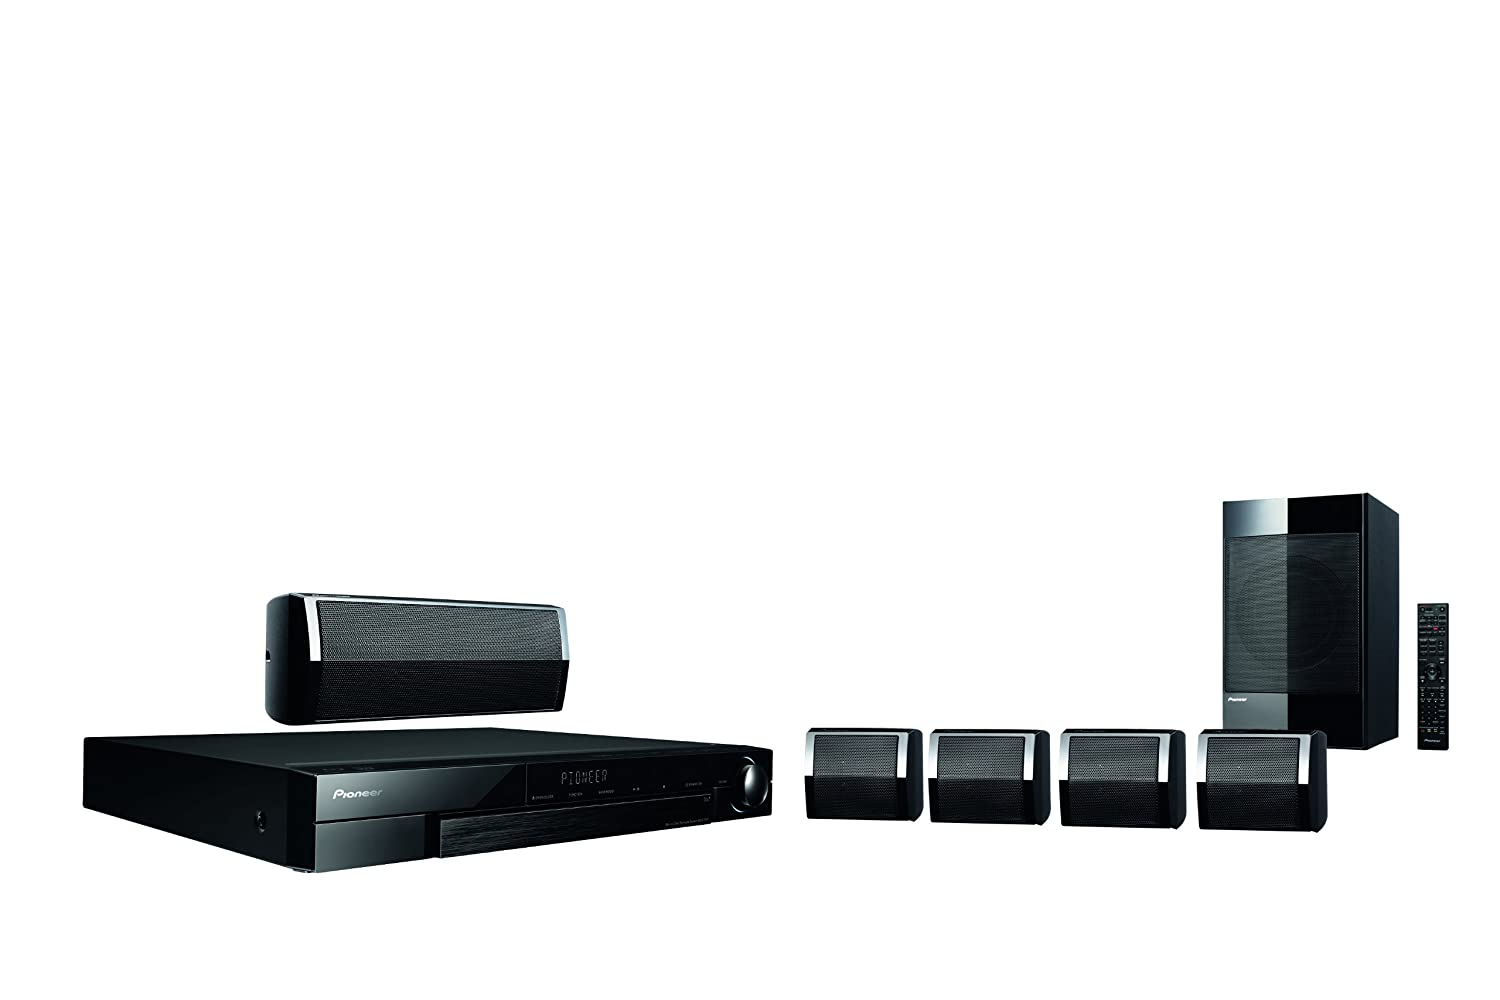 Pioneer MCS-333 5.1 Channel Media Centre System